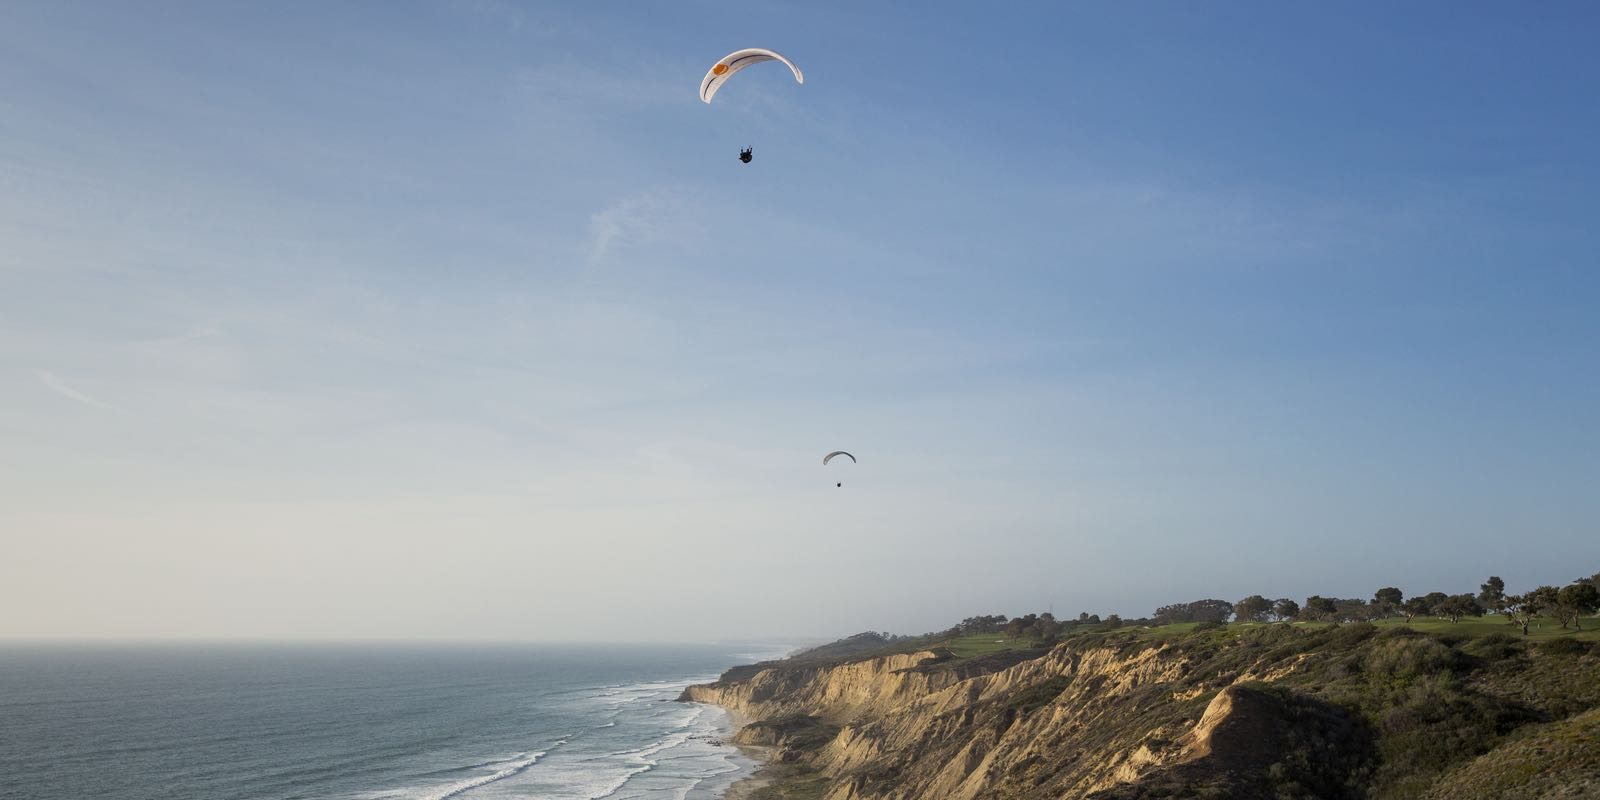 Parasailing at Torrey Pines | Thrill Seekers: Take to the Air and Sea in San Diego